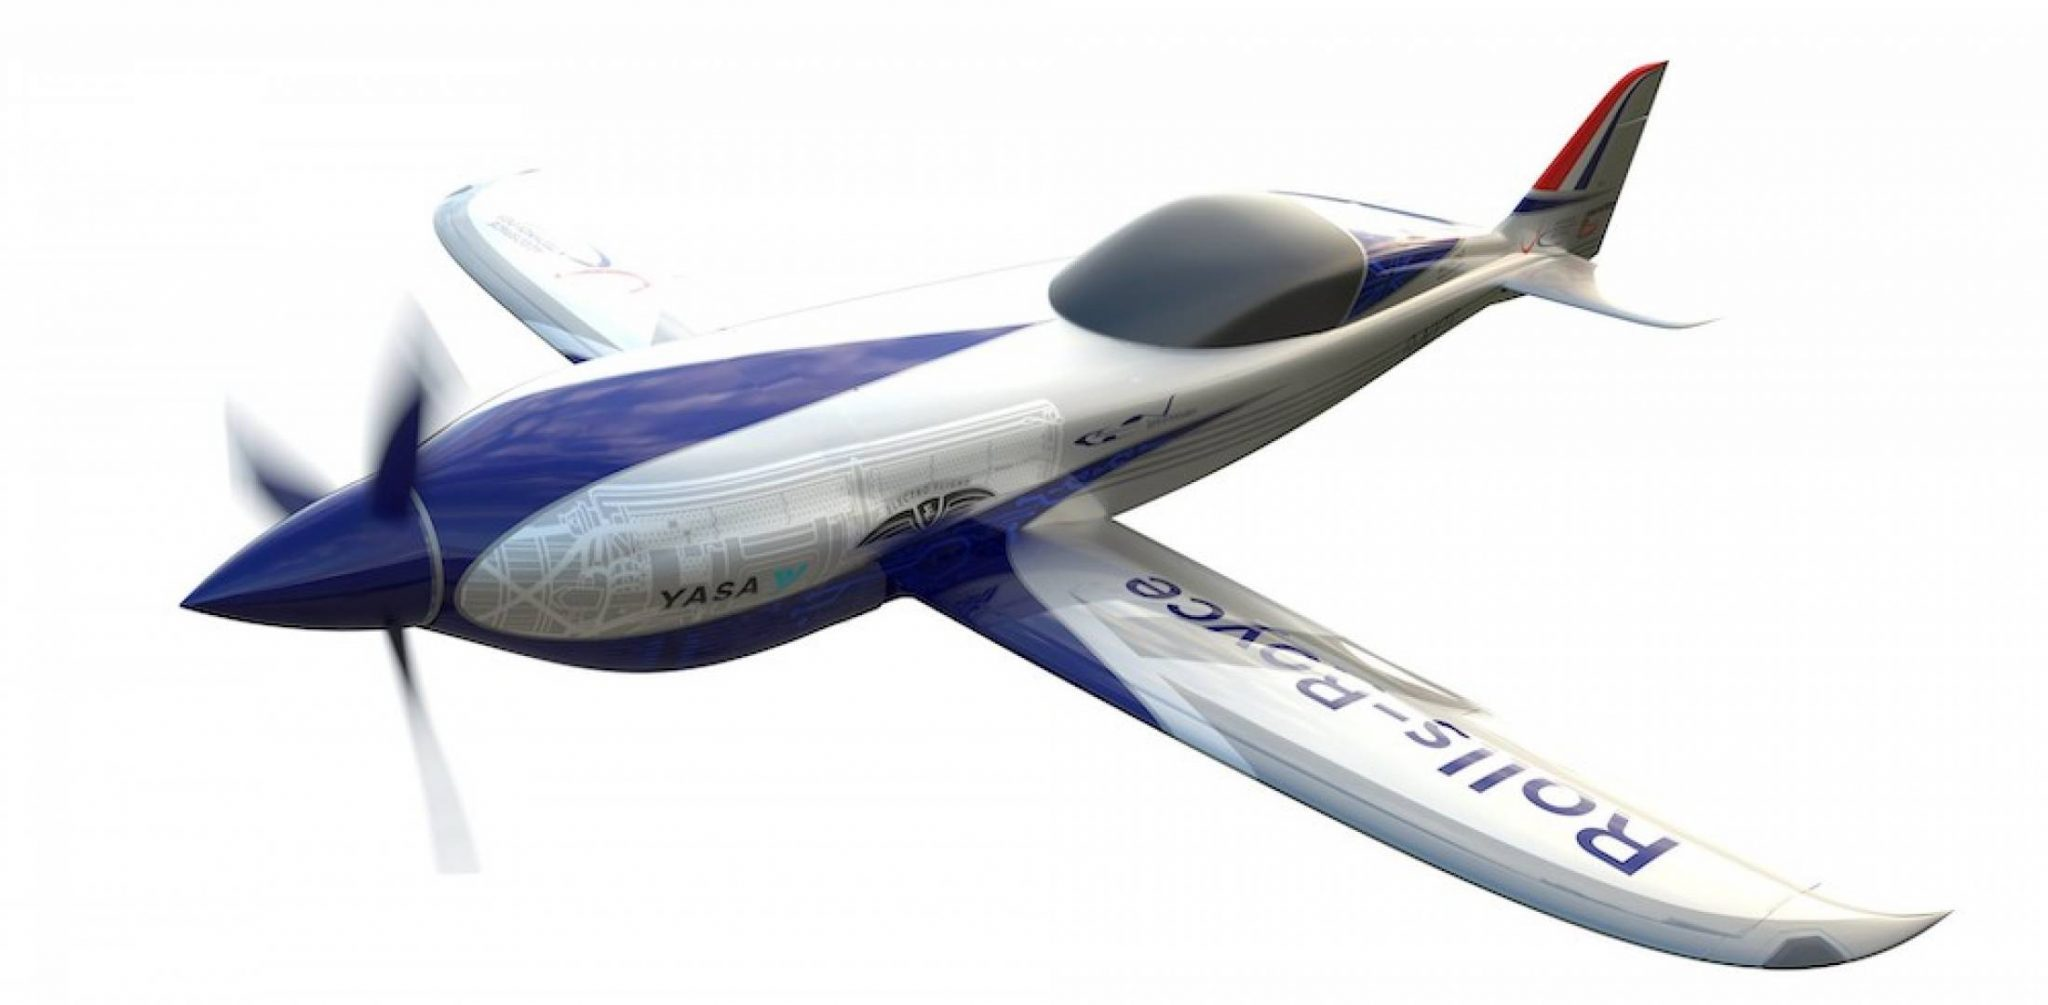 Rolls-Royce presented electric airplane for speed record